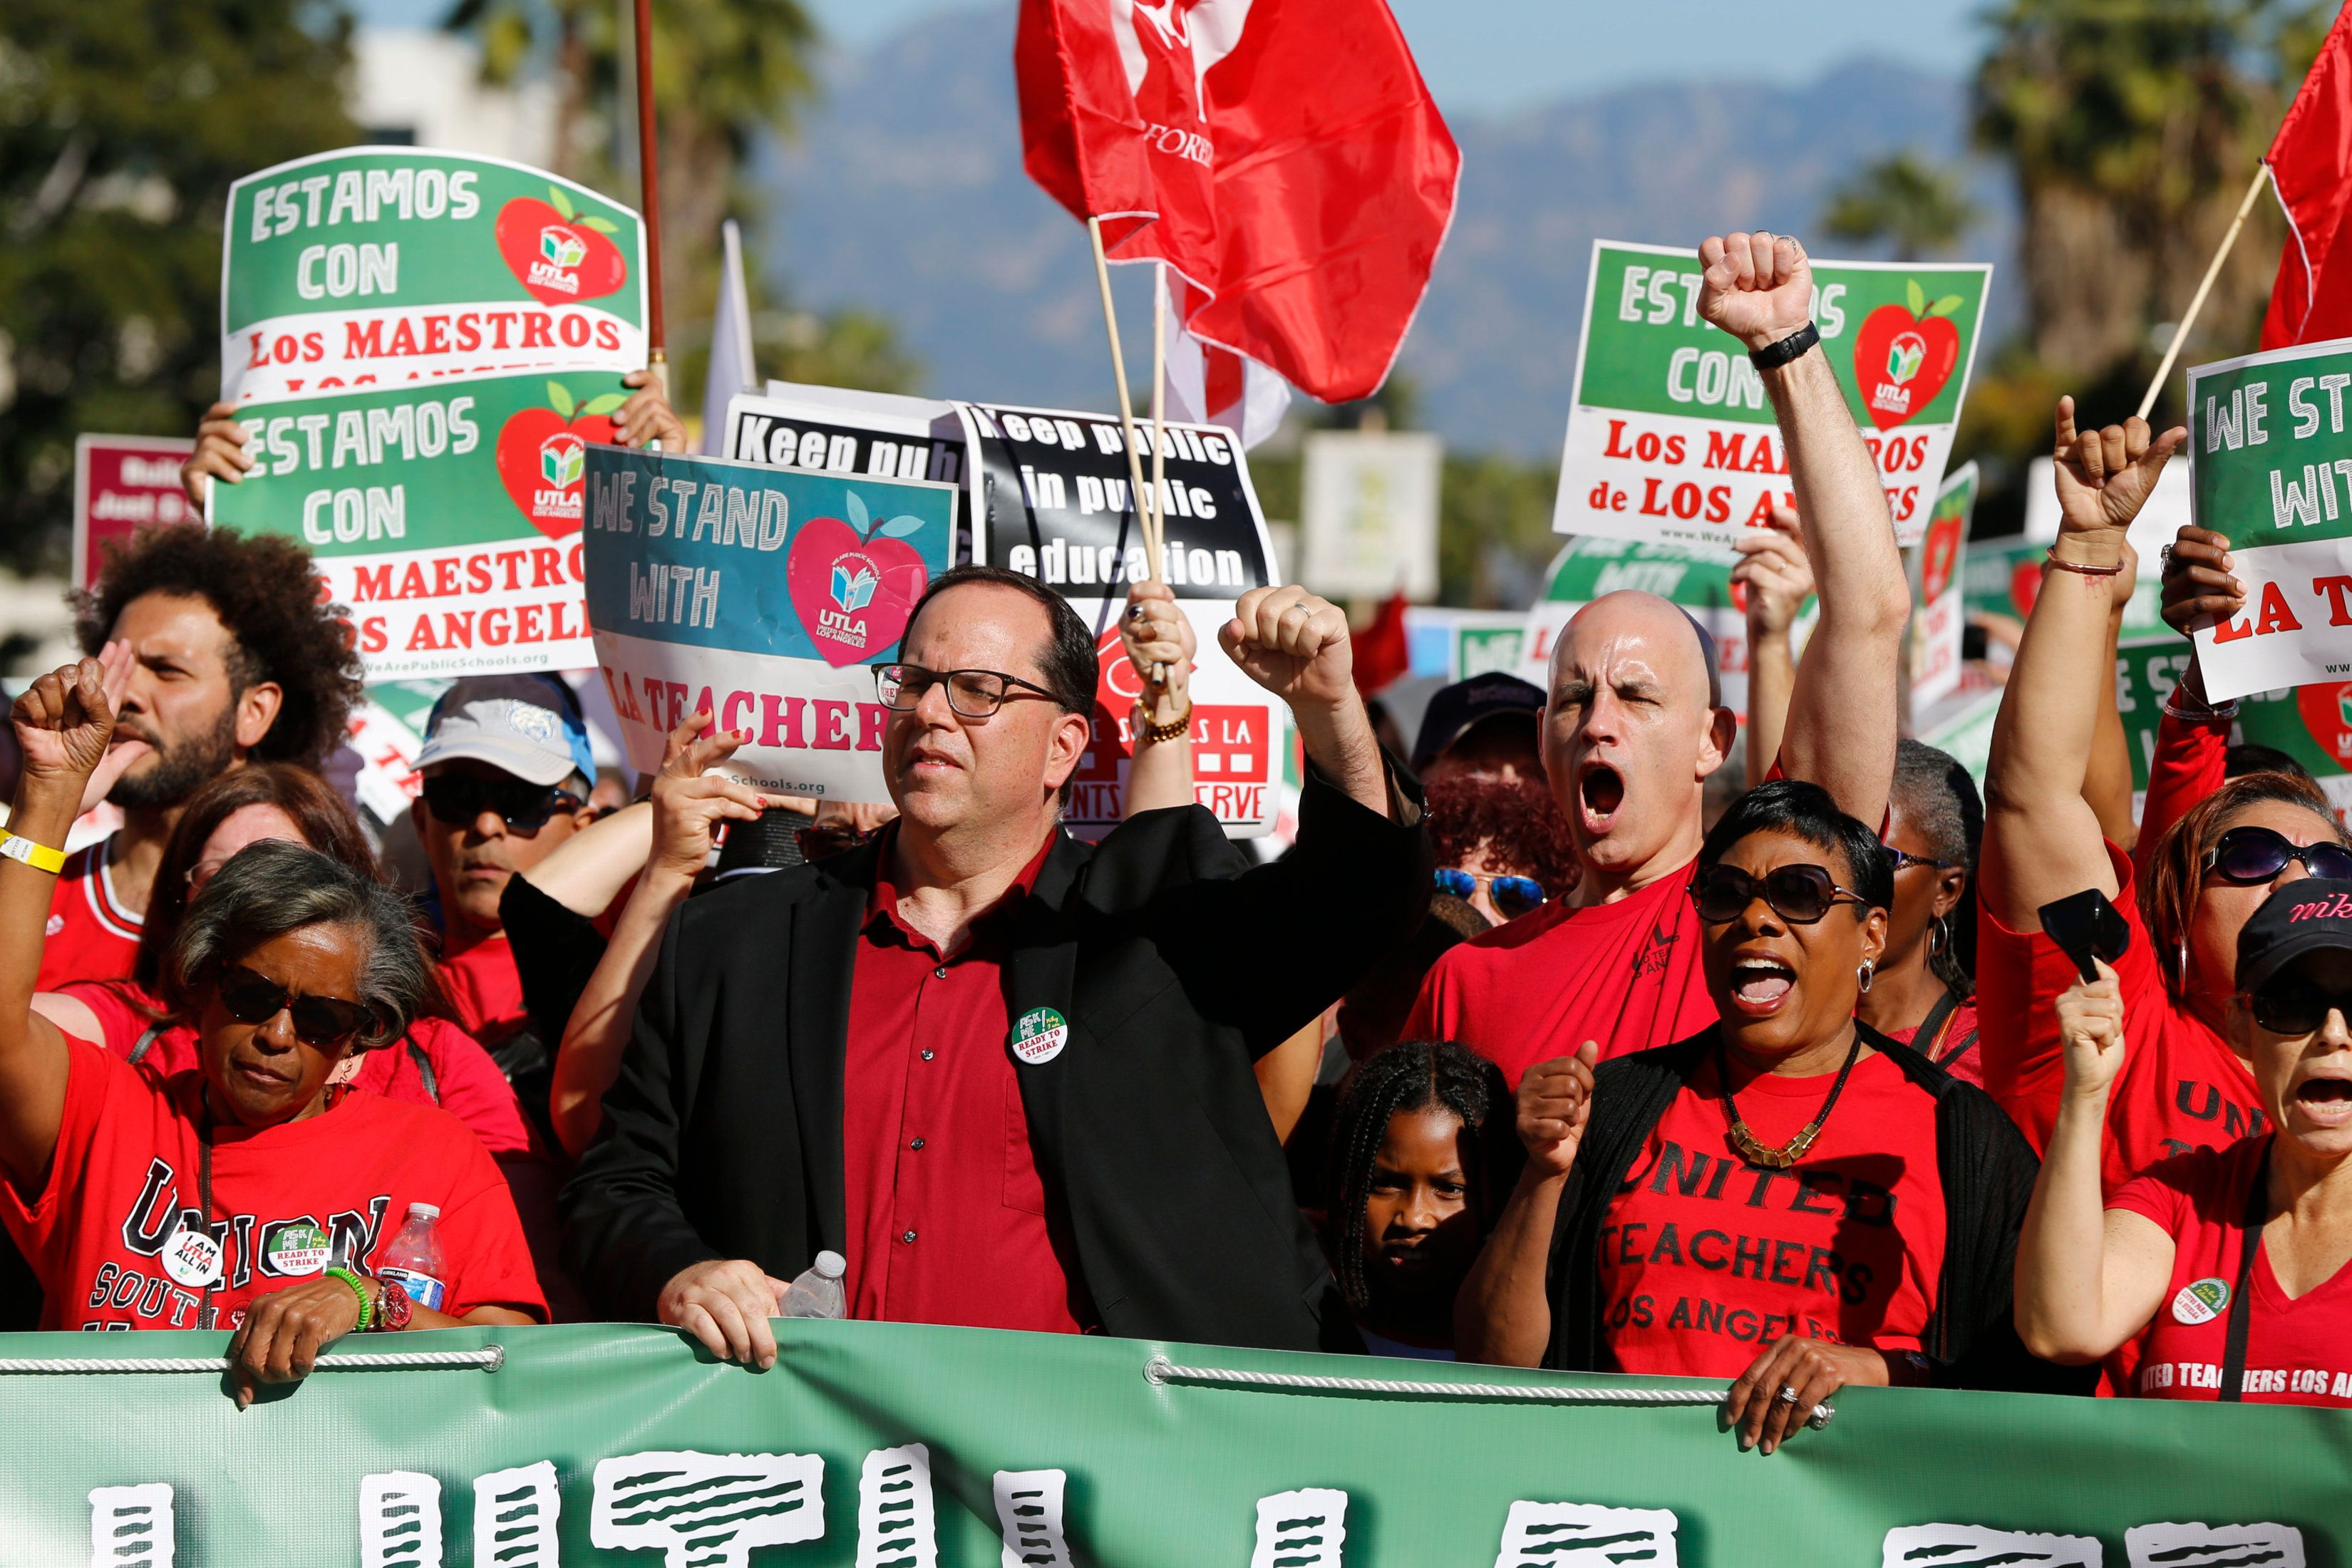 In this Saturday, Dec. 15, 2018 photo, United Teachers Los Angeles President Alex Caputo-Pearl, center, joins teachers at a rally next to the Broad Museum in Los Angeles. Teachers in the nation's second-largest school district will go on strike next month if there's no settlement of its long-running contract dispute, union leaders said Wednesday, Dec. 19. The announcement by United Teachers Los Angeles threatens the first strike against the Los Angeles Unified School District in nearly 30 years and follows about 20 months of negotiations. (AP Photo/Damian Dovarganes